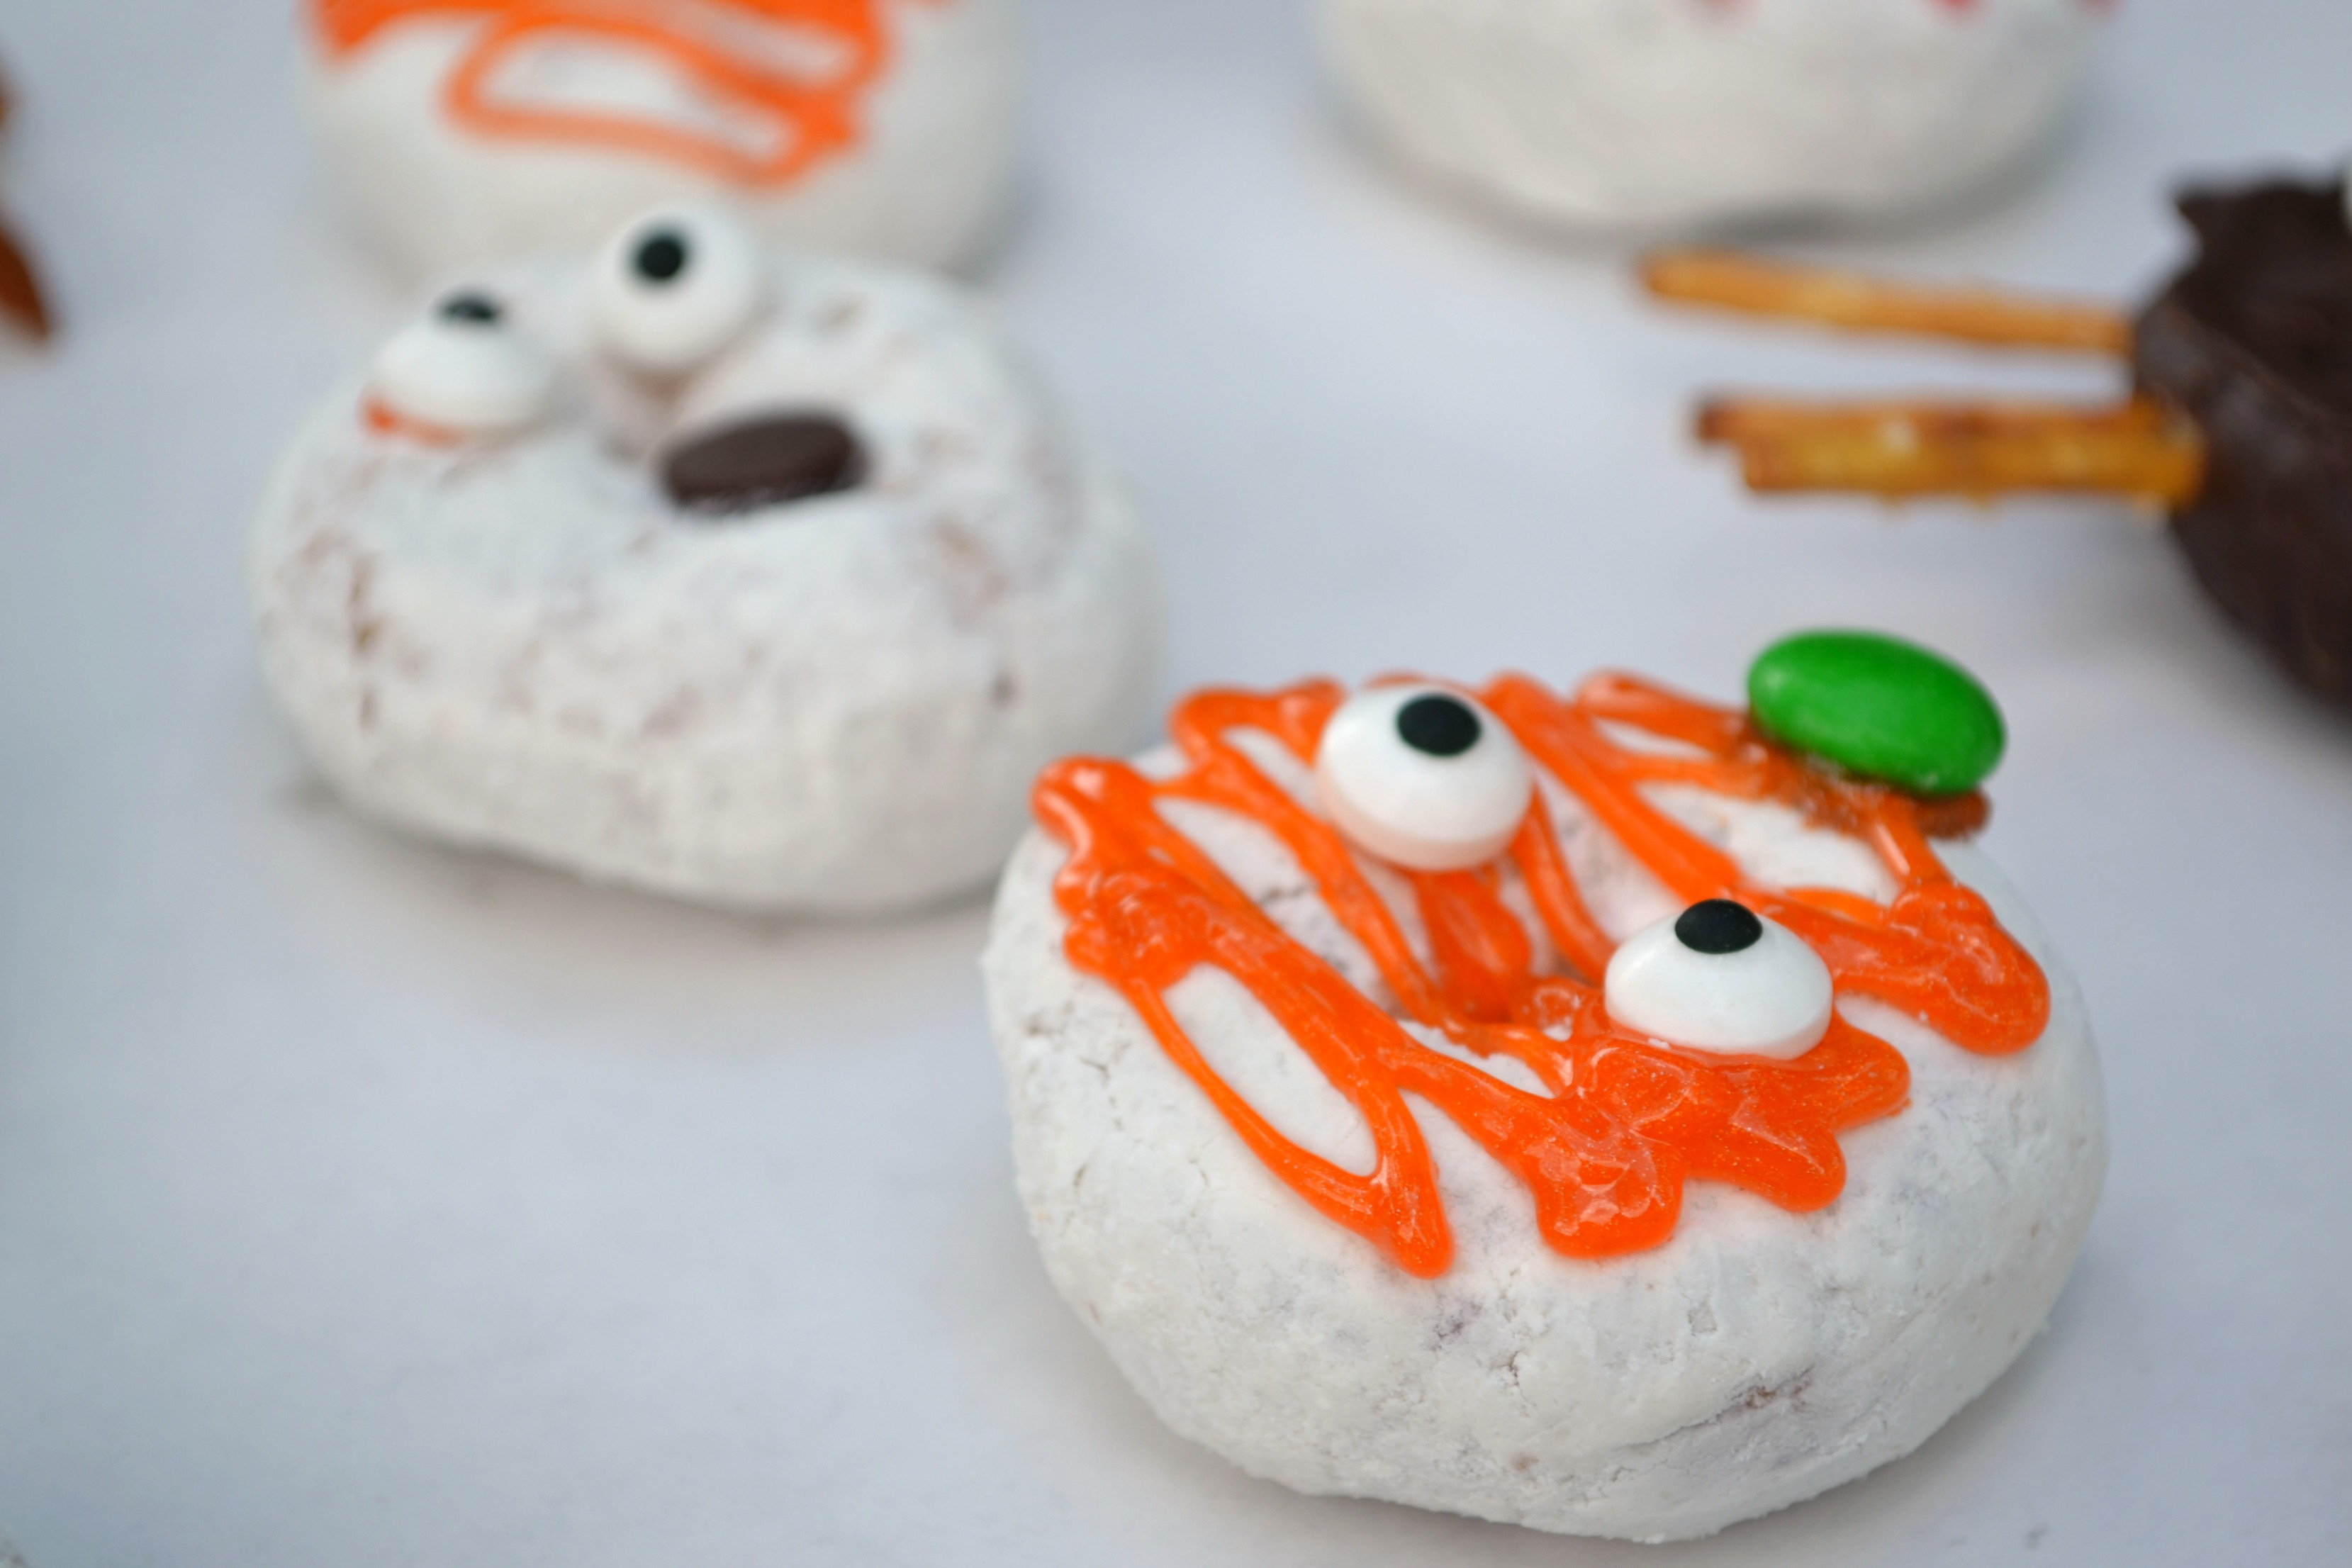 a powdered halloween donuts drizzled in orange frosting with a green mm and candy eyes to make it look like  a pumpkin